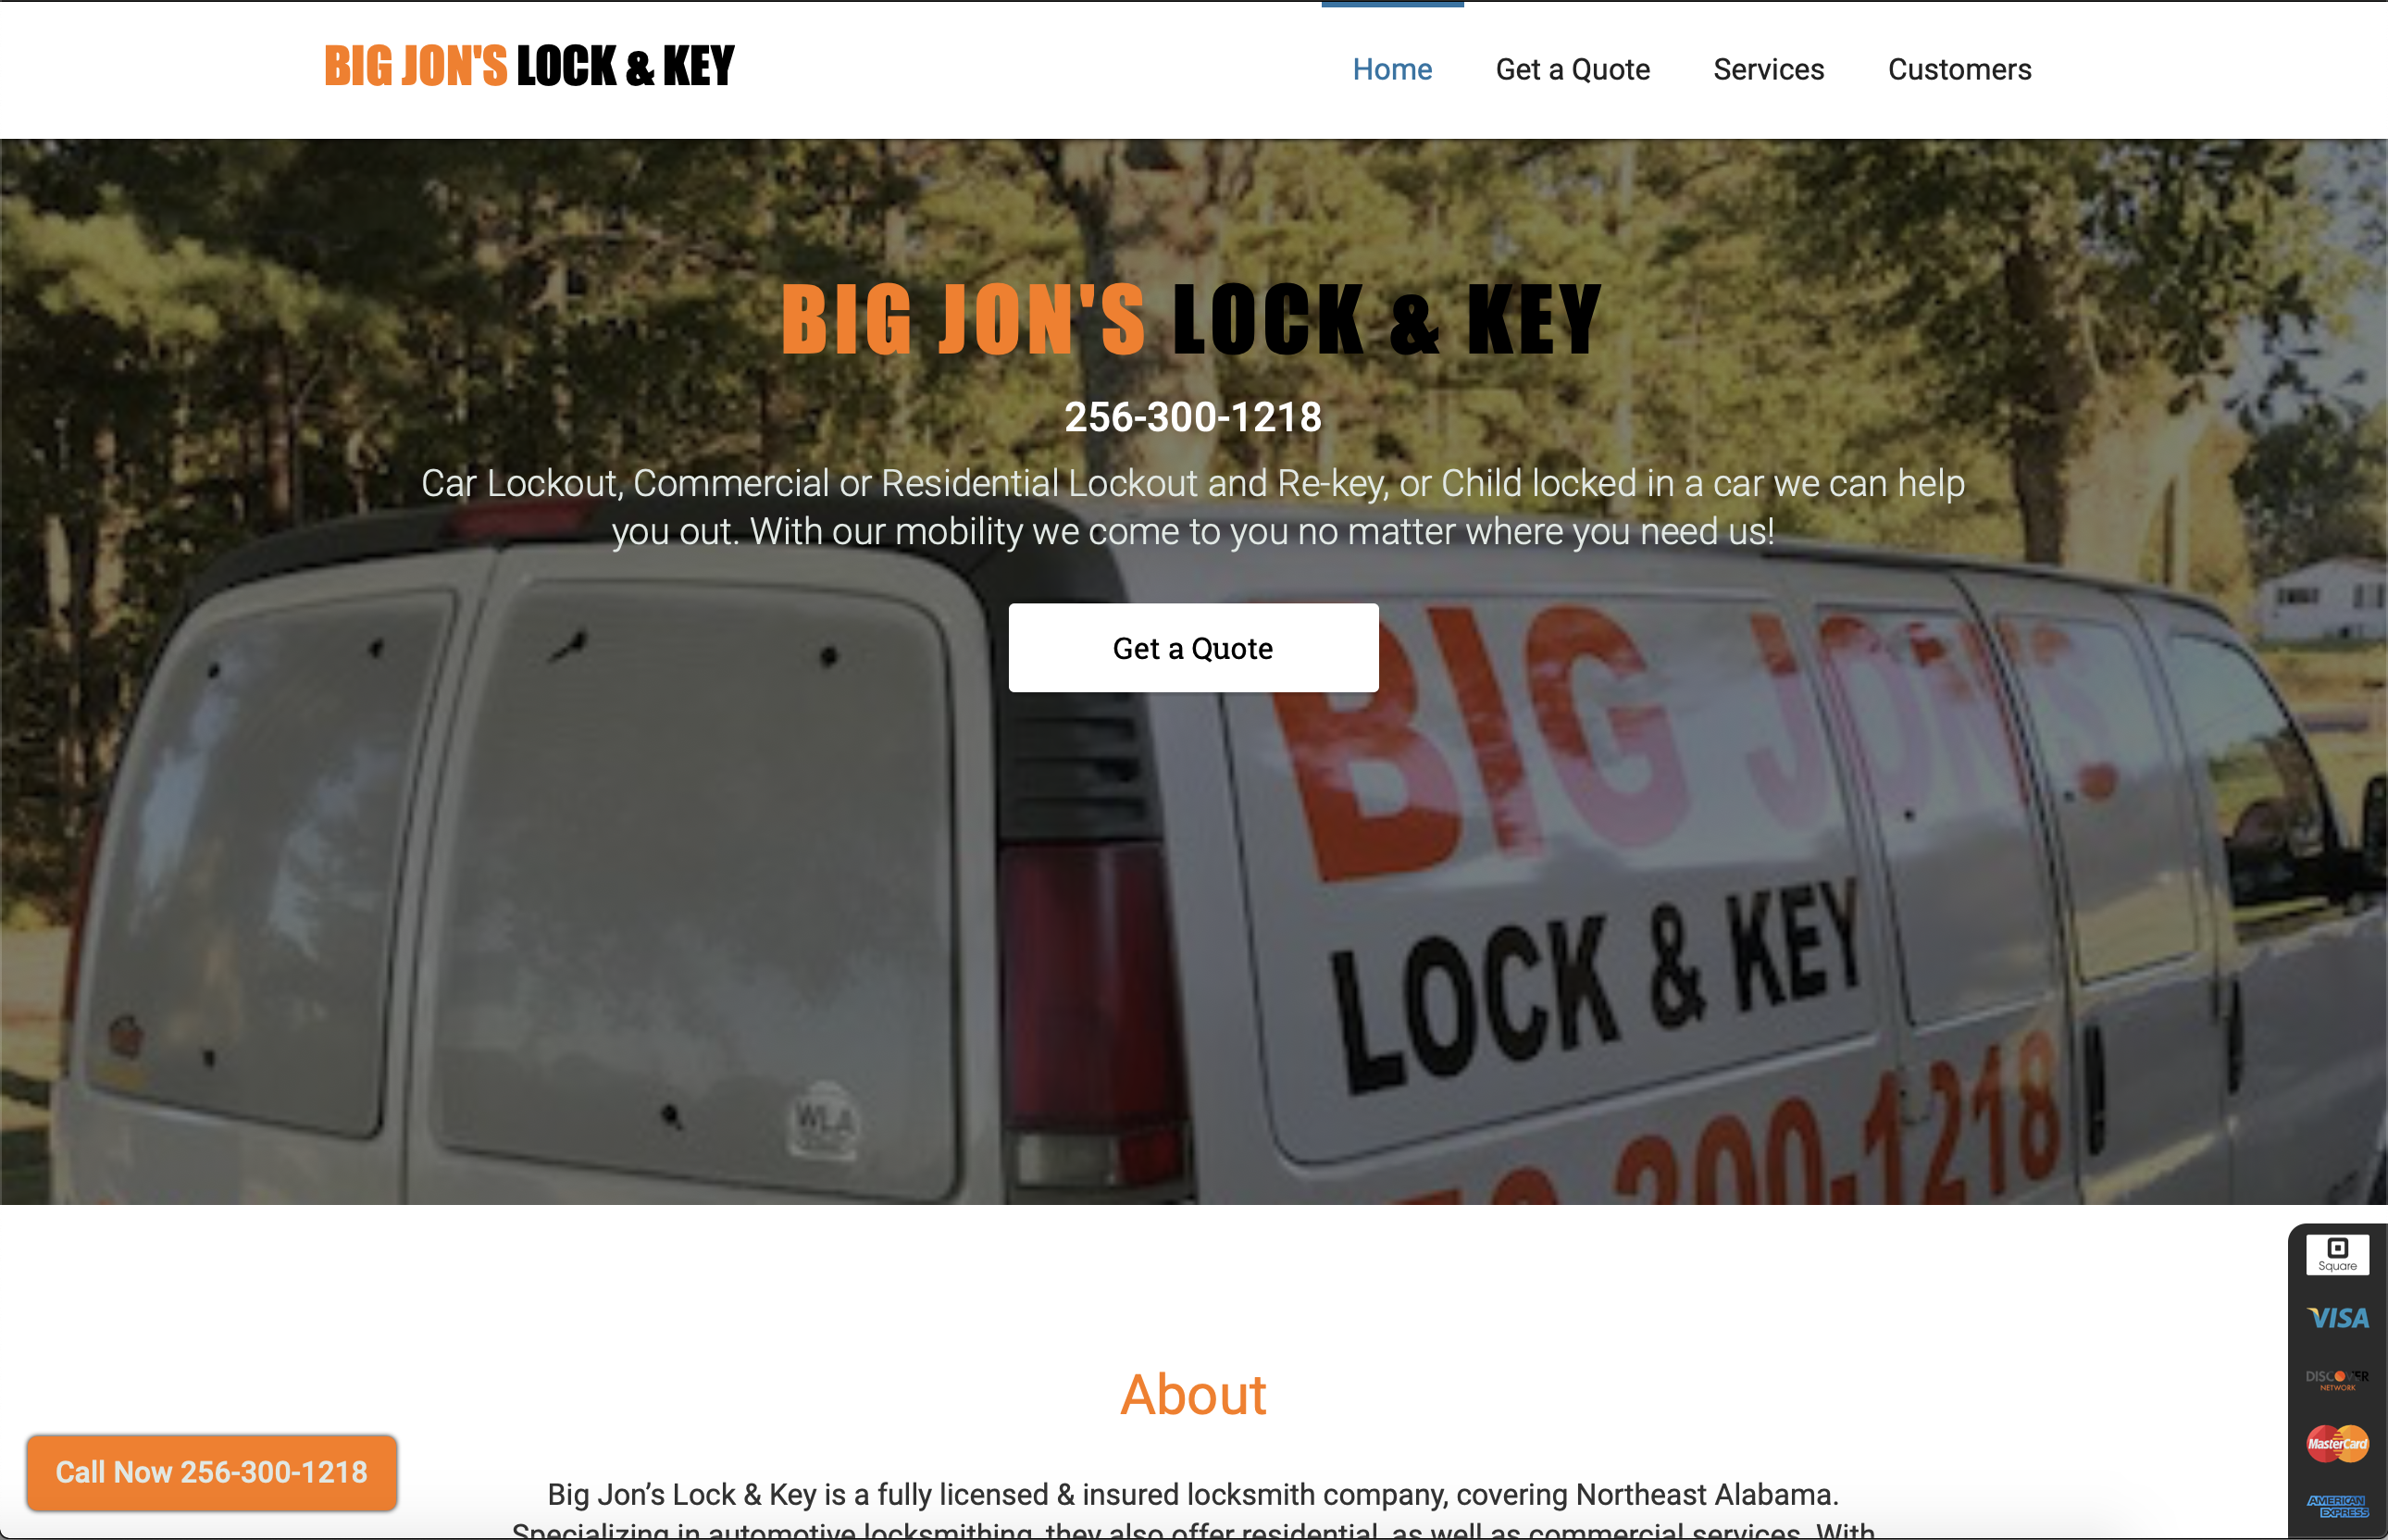 Big Jon's Lock and key